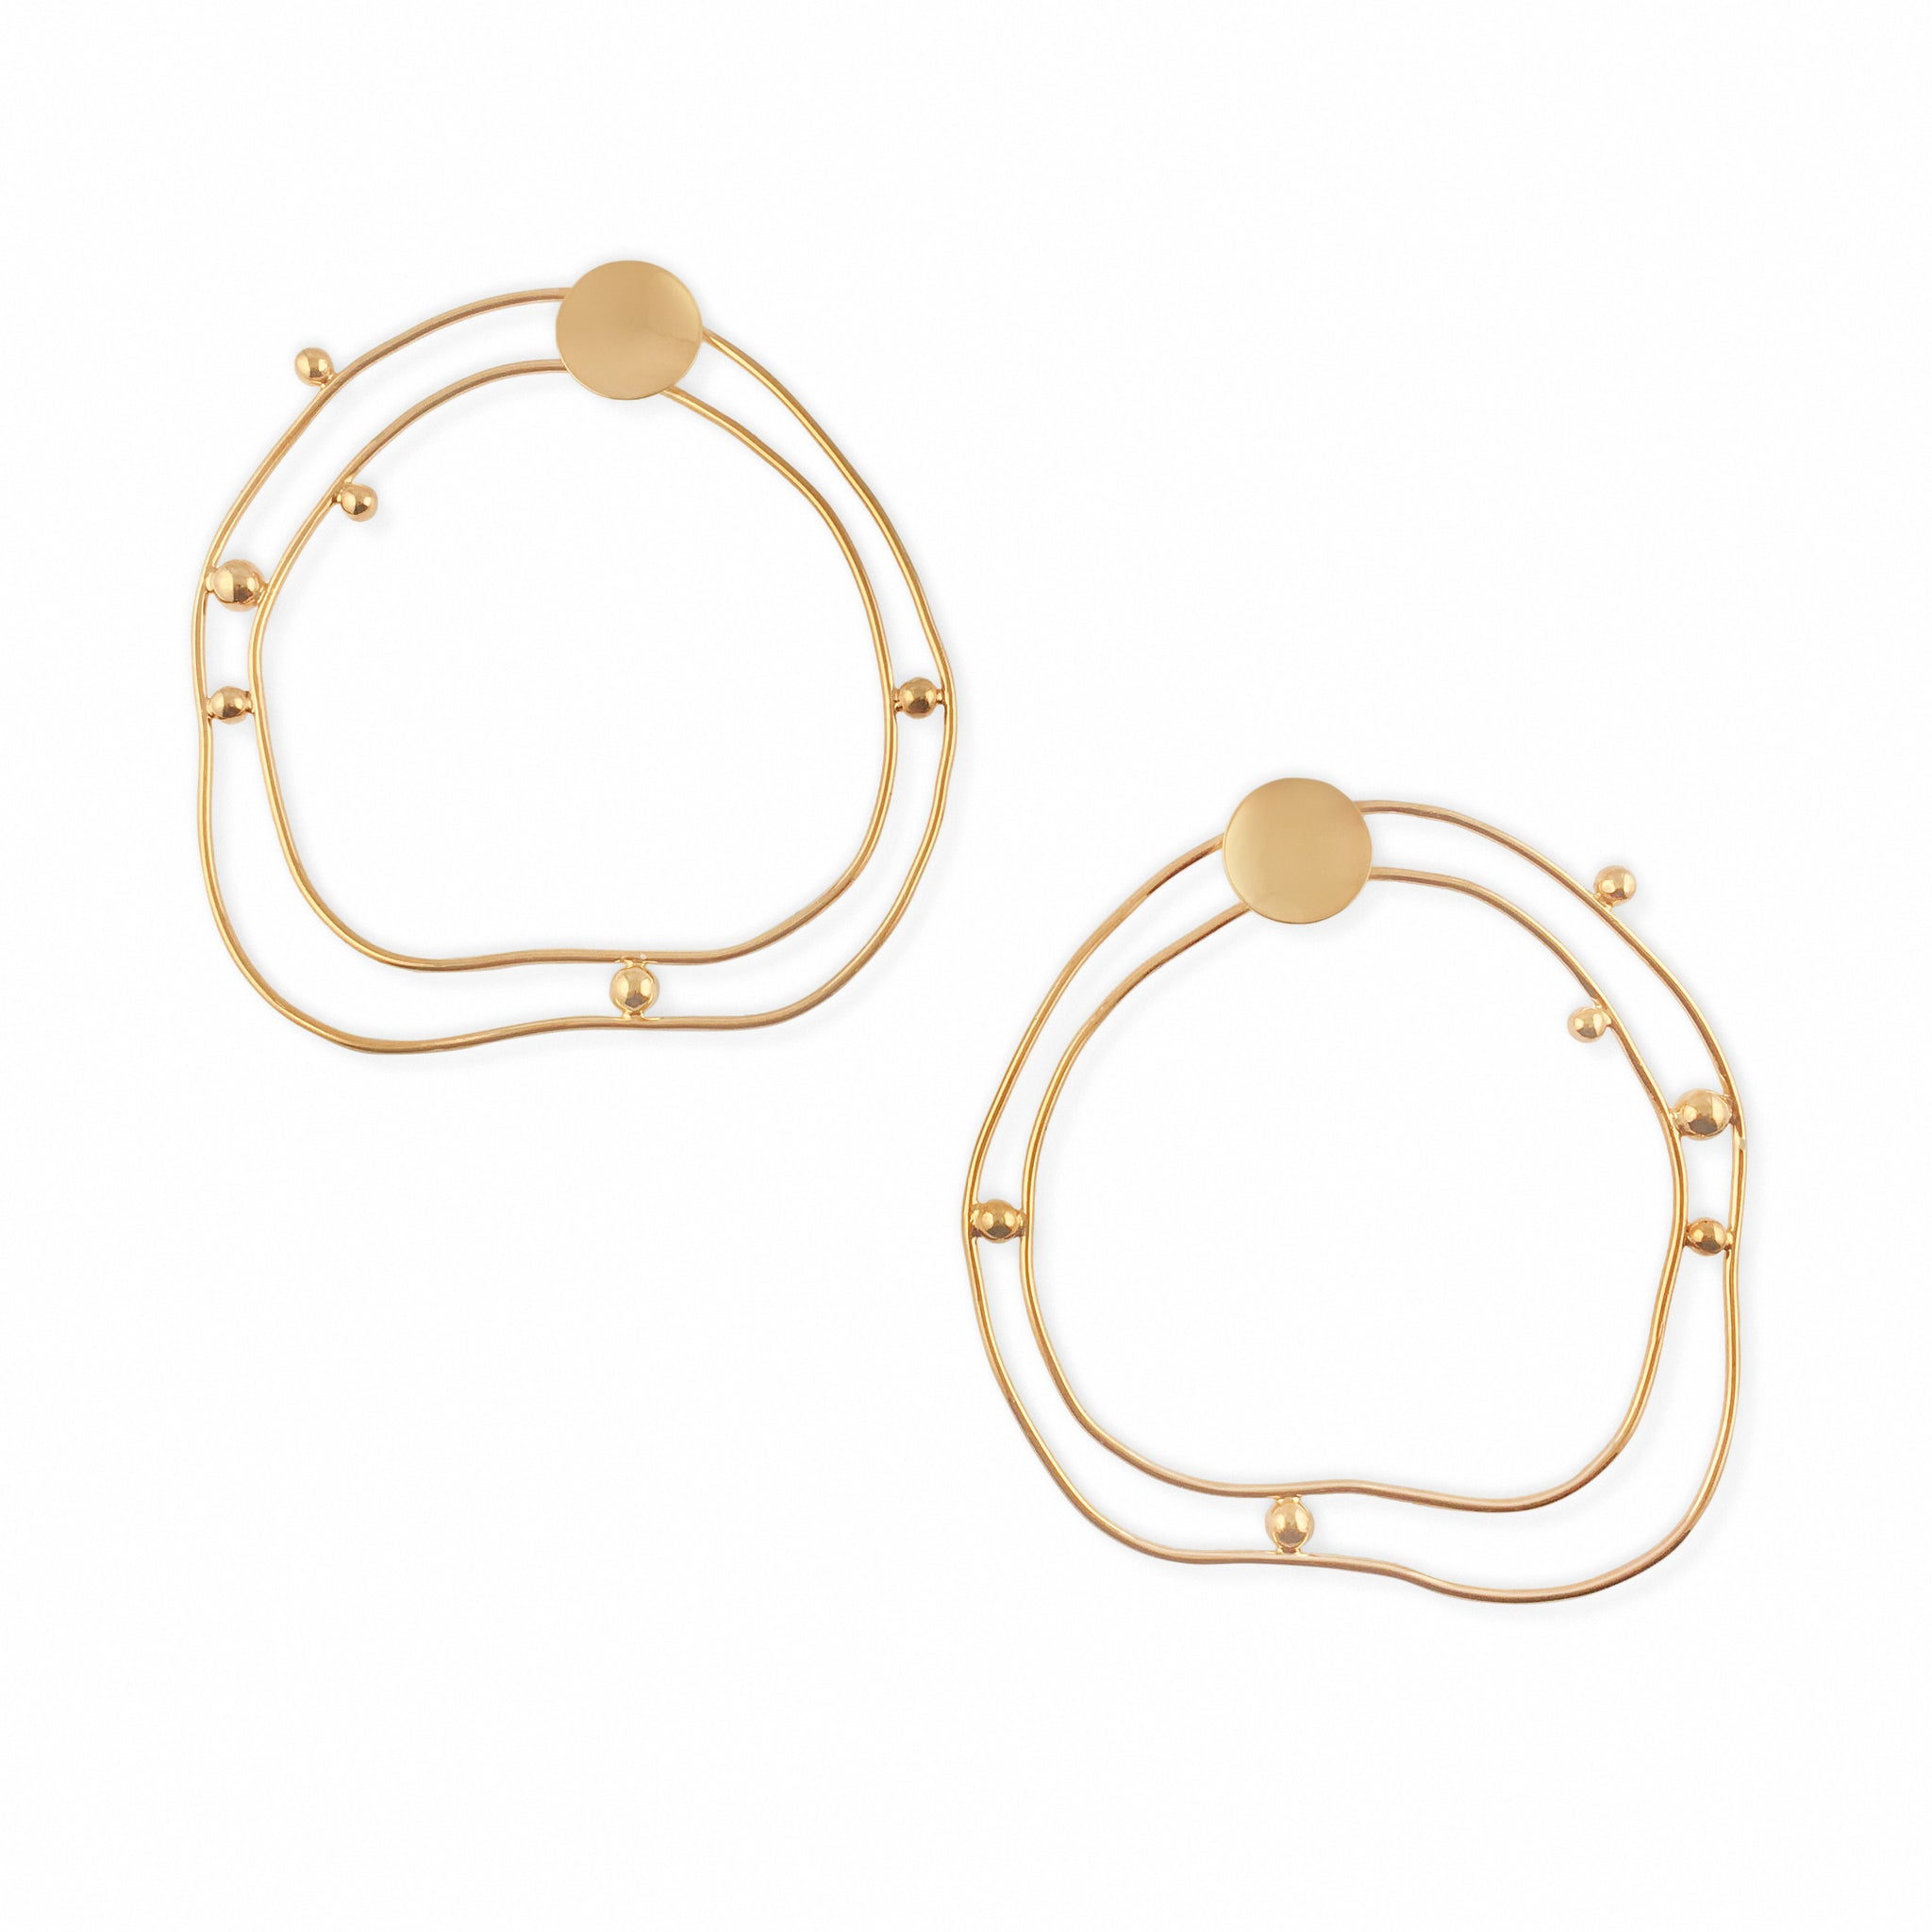 MISHO DESIGNS - LARGE GOLD CIRCLE EARRINGS